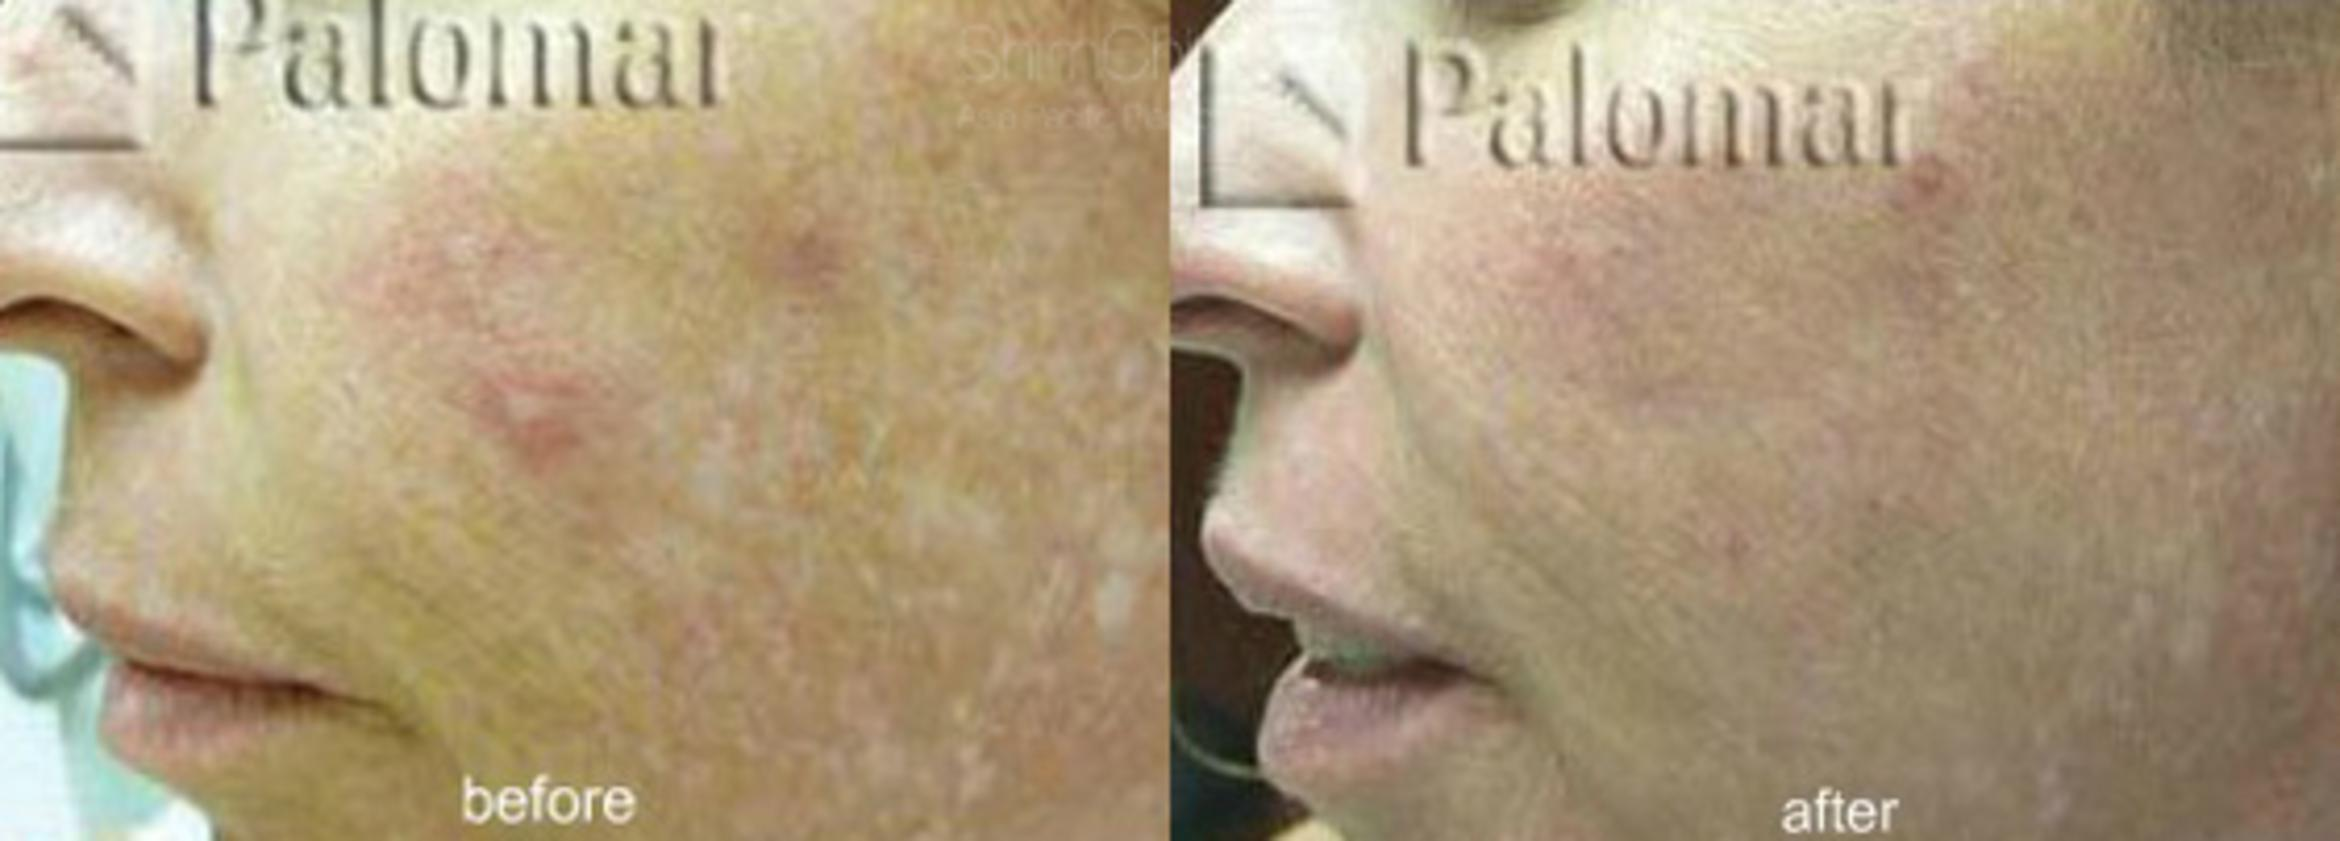 Laser Resurfacing Case 139 Before & After View #1 | Honolulu, HI | Shim Ching, MD: Asia Pacific Plastic Surgery